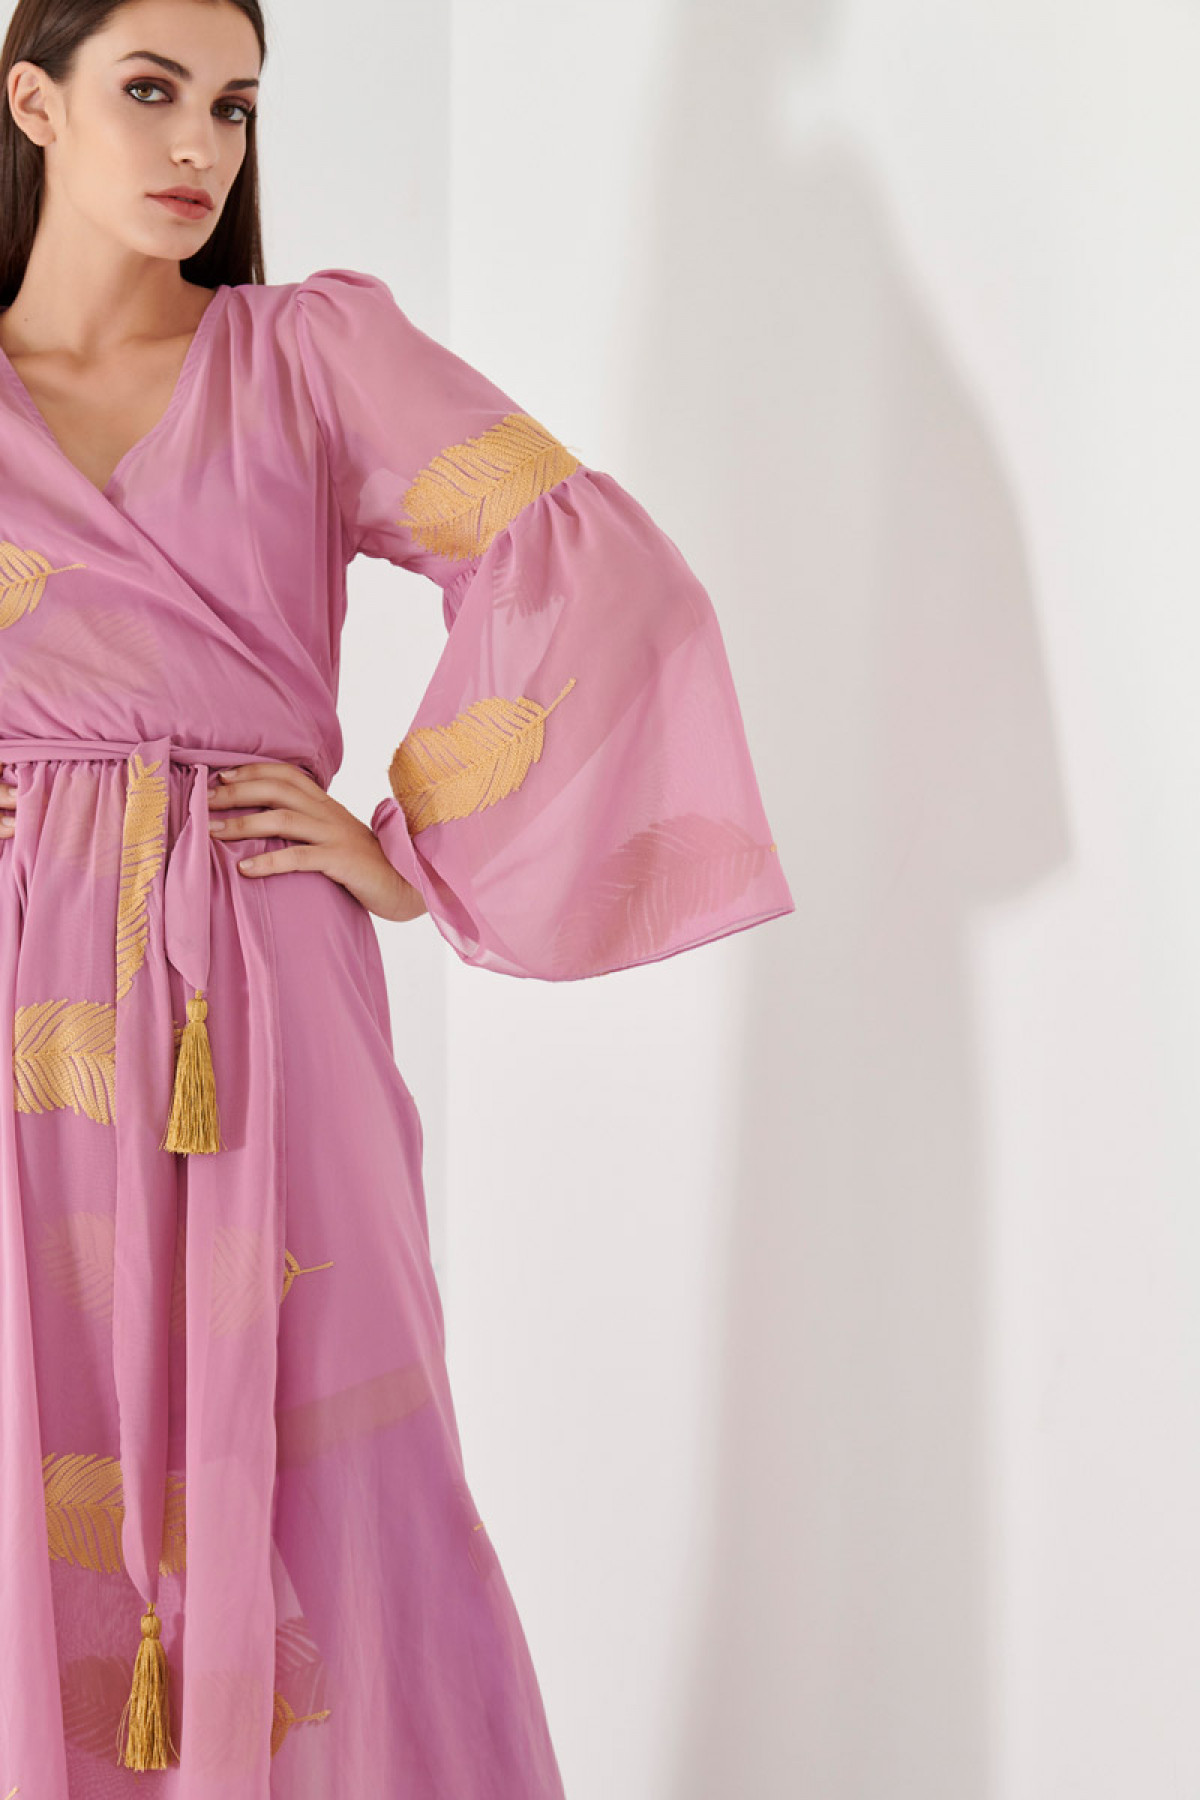 LONG CHIFFON DRESS WITH GOLDEN EMBROIDERY-pink